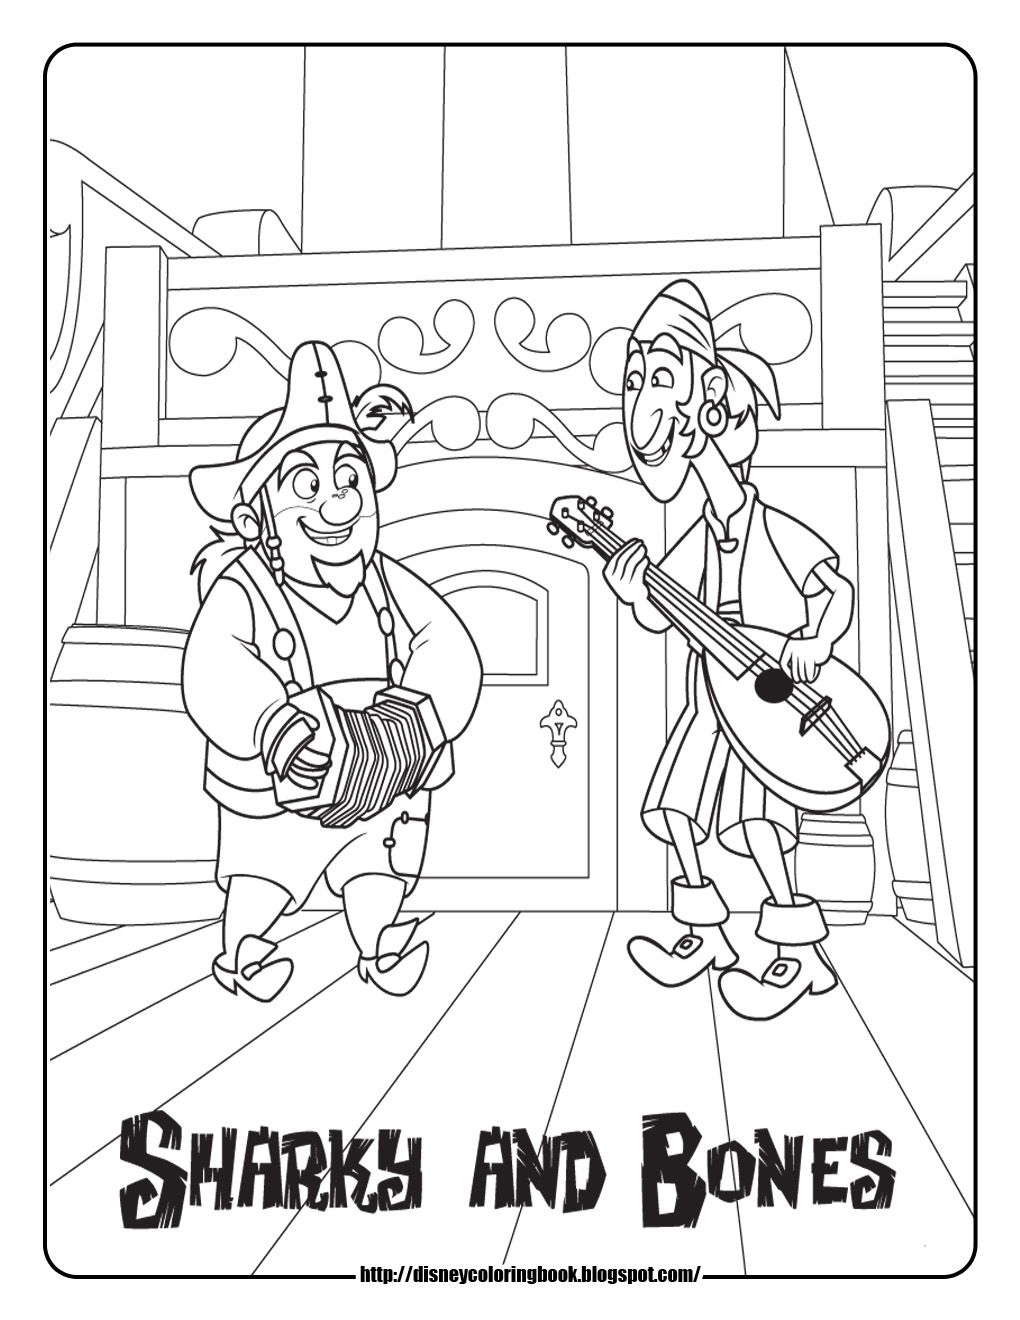 jake and the never land pirates coloring pages sharky and bones ...